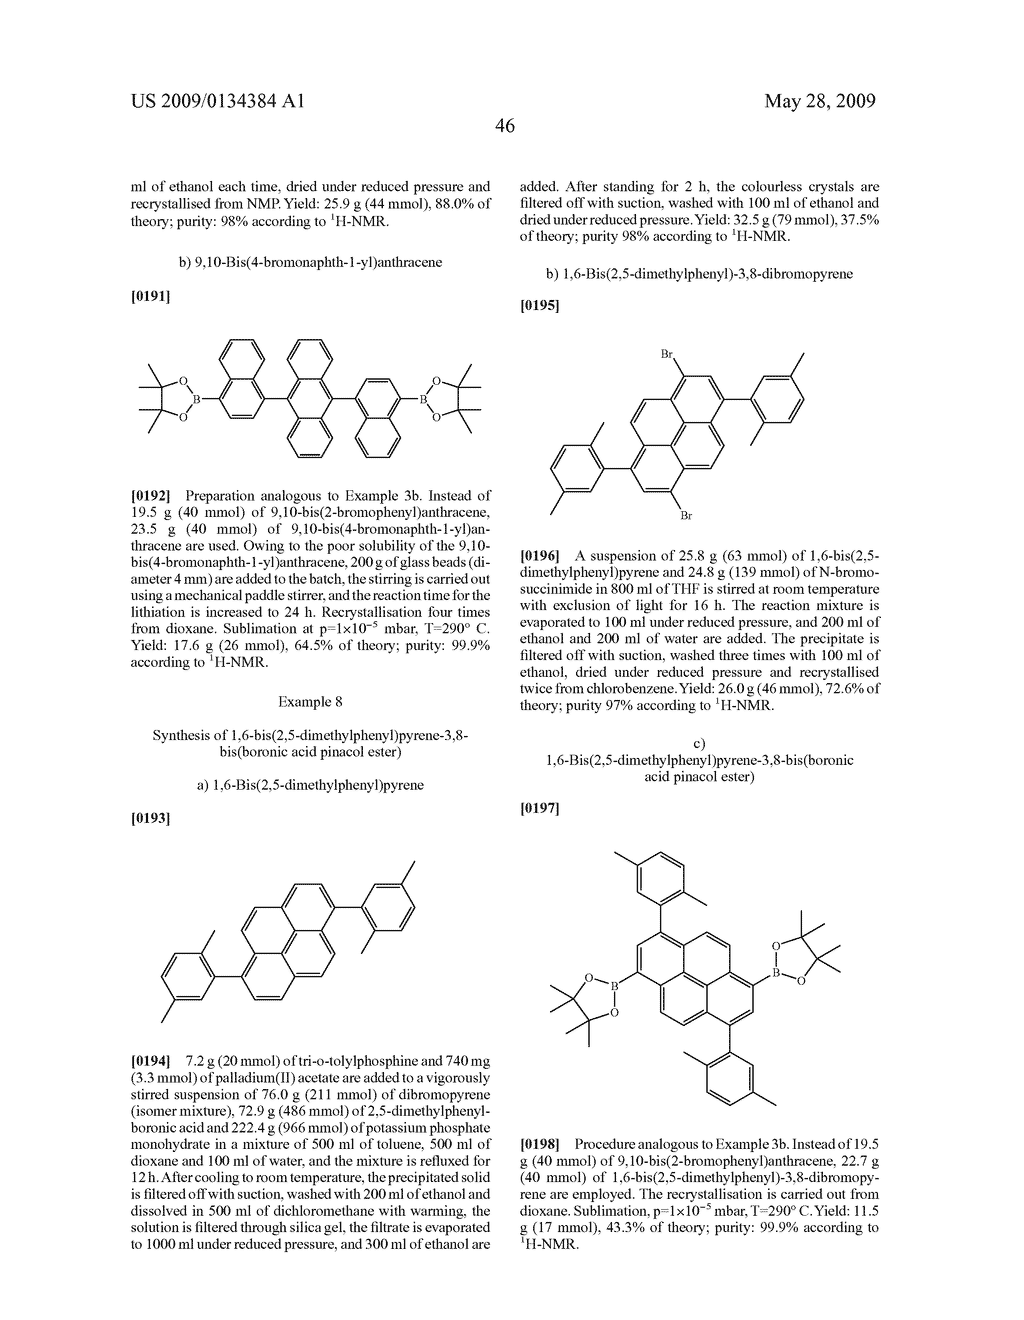 ORGANIC ELECTROLUMINESCENT DEVICE AND BORIC ACID AND BORINIC ACID DERIVATIVES USED THEREIN - diagram, schematic, and image 48